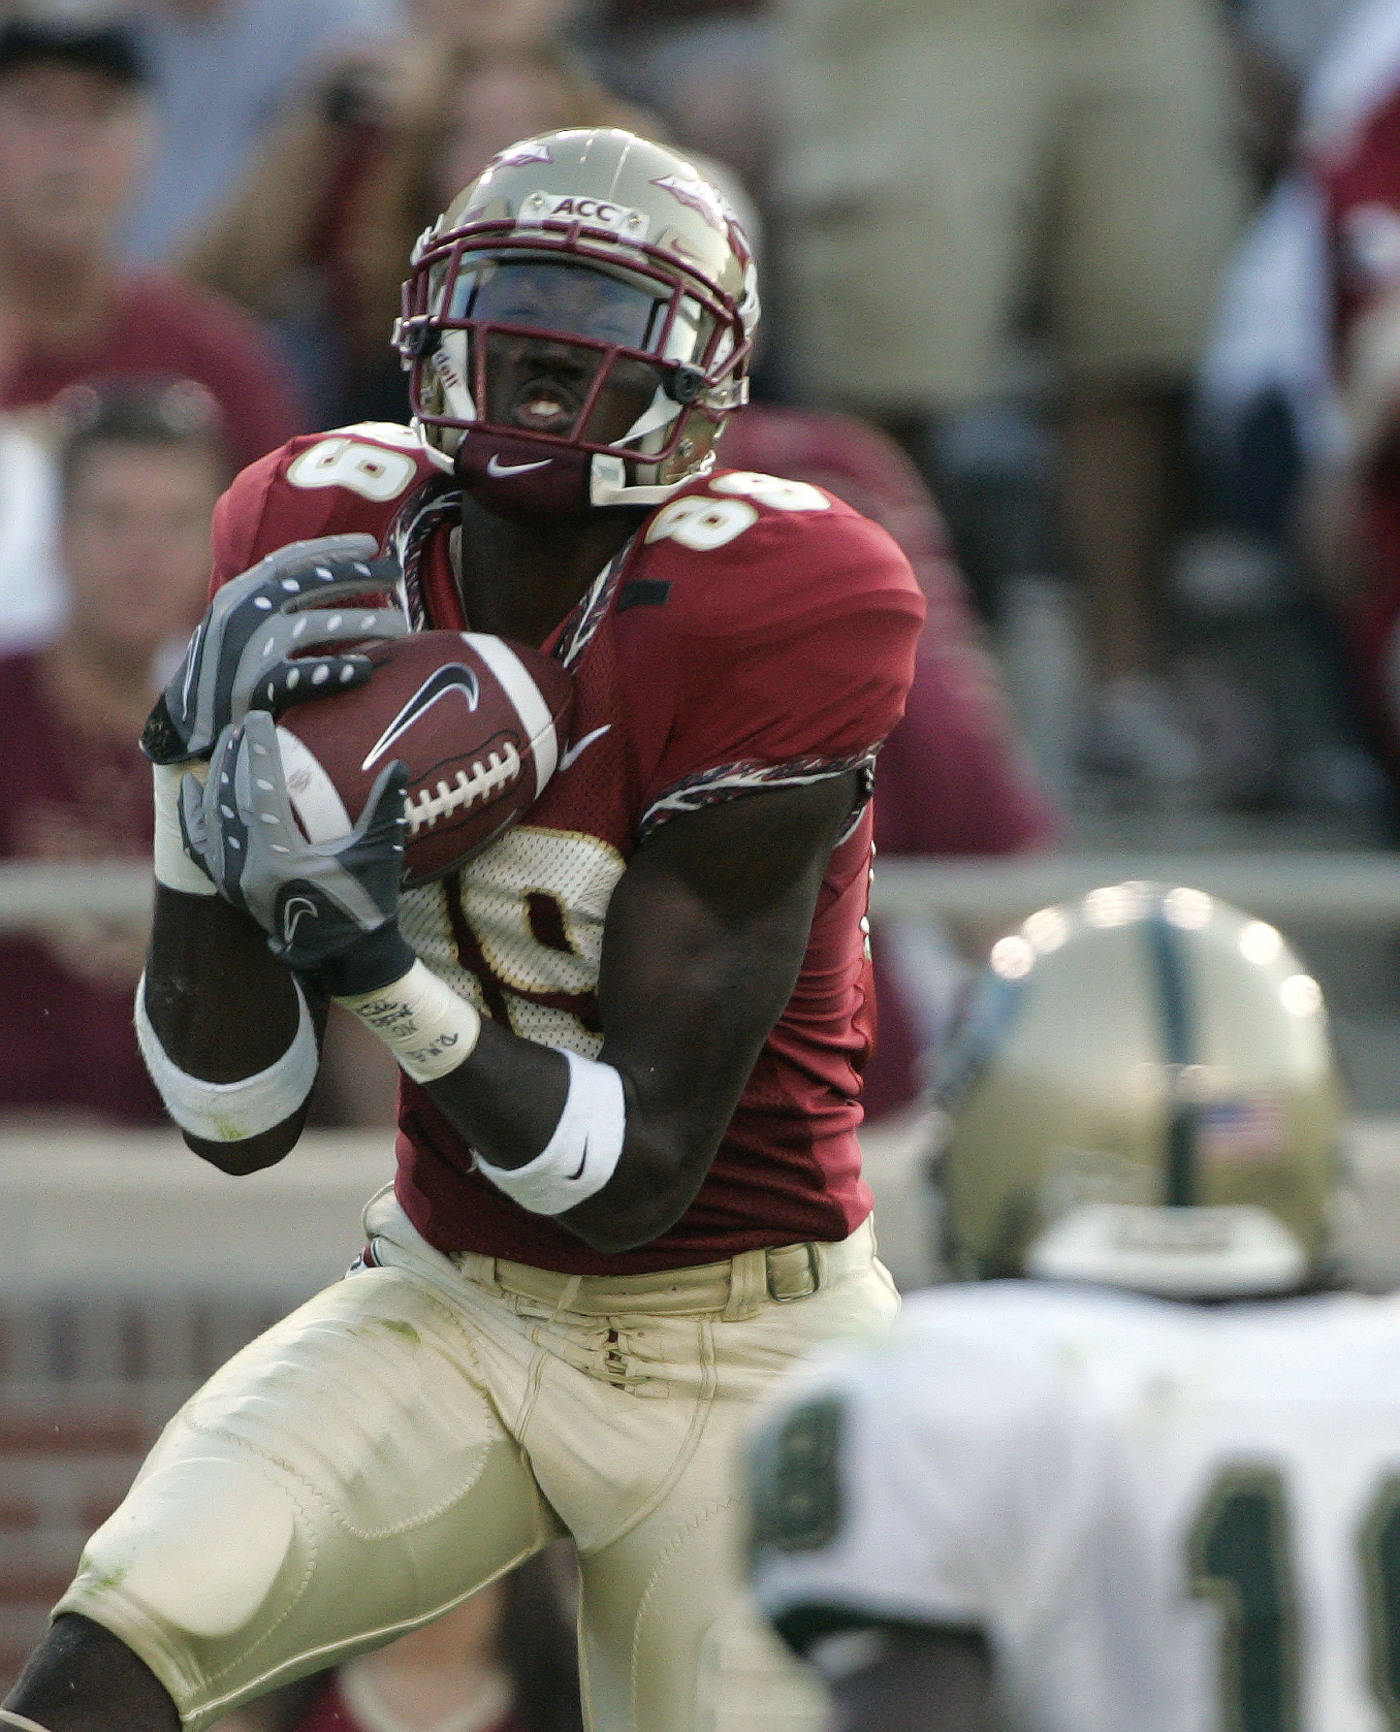 Florida State receiver Greg Carr, left, makes a third-quarter catch in front of UAB defender Will Dunbar during a football game Saturday, Sept. 8, 2007, in Tallahassee, Fla. Florida State won 34-24. (AP Photo/Phil Coale)